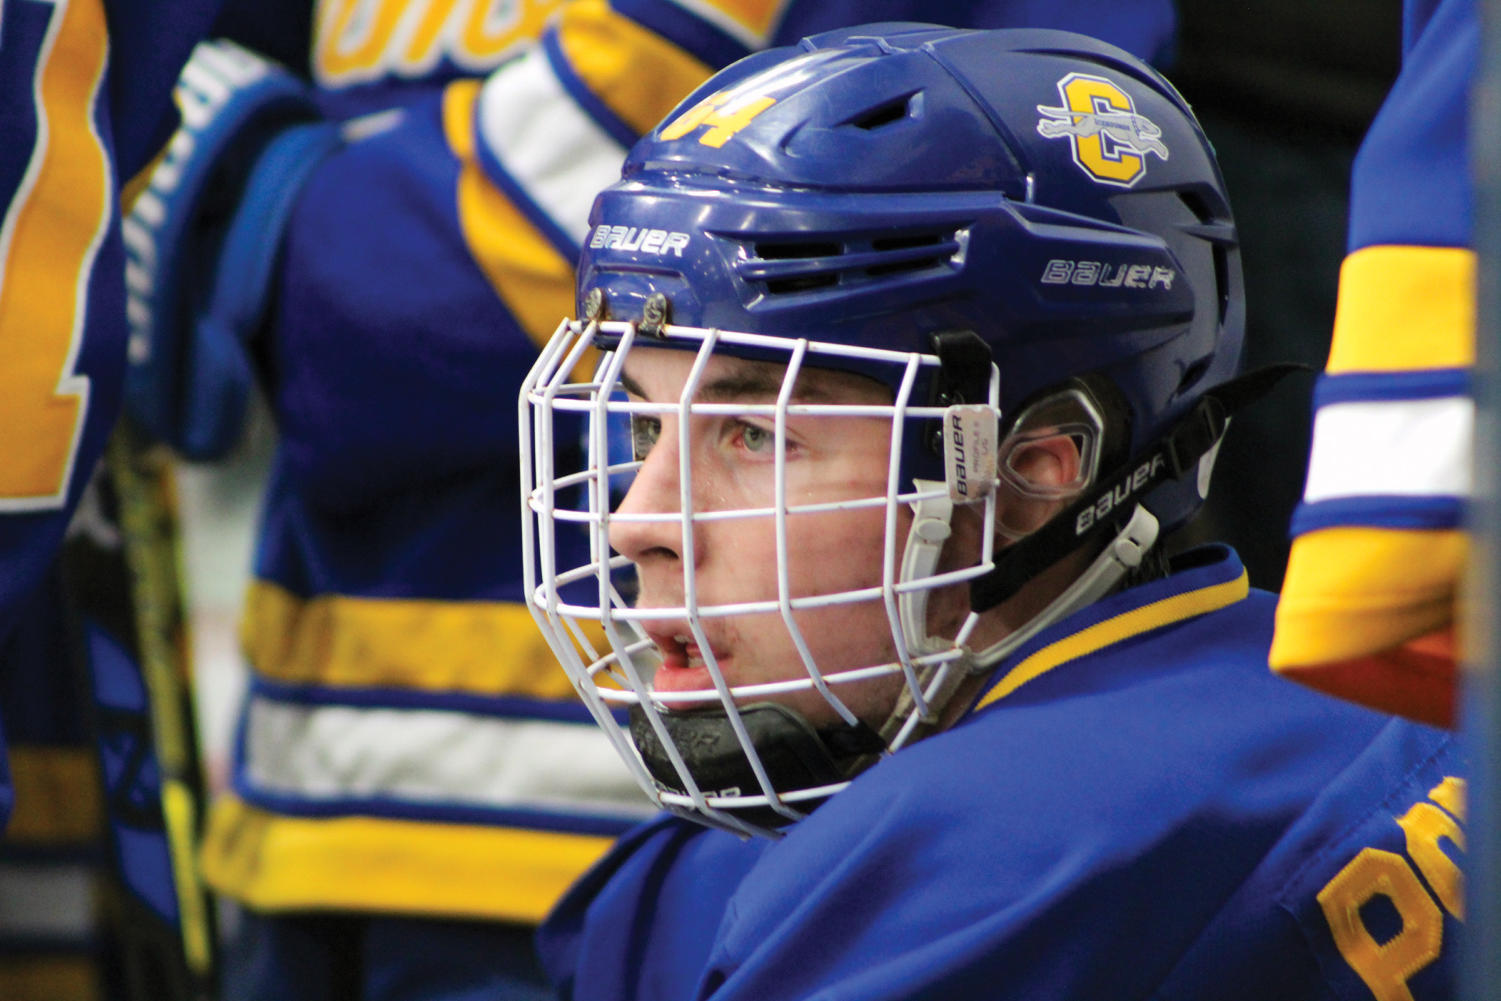 STAREDOWN: Nick Popowicks, a junior and forward on the Icehounds gold team, watches the game after finishing his shift during the Icehounds 5-2 victory over Zionsville. Popowicks said that although some Friday night games have student spectators, there are very few people that watch weekend games. I don't believe that not being associated with IHSAA has affected our performance, but it would be nice for hockey to be recognized as an IHSAA sport.